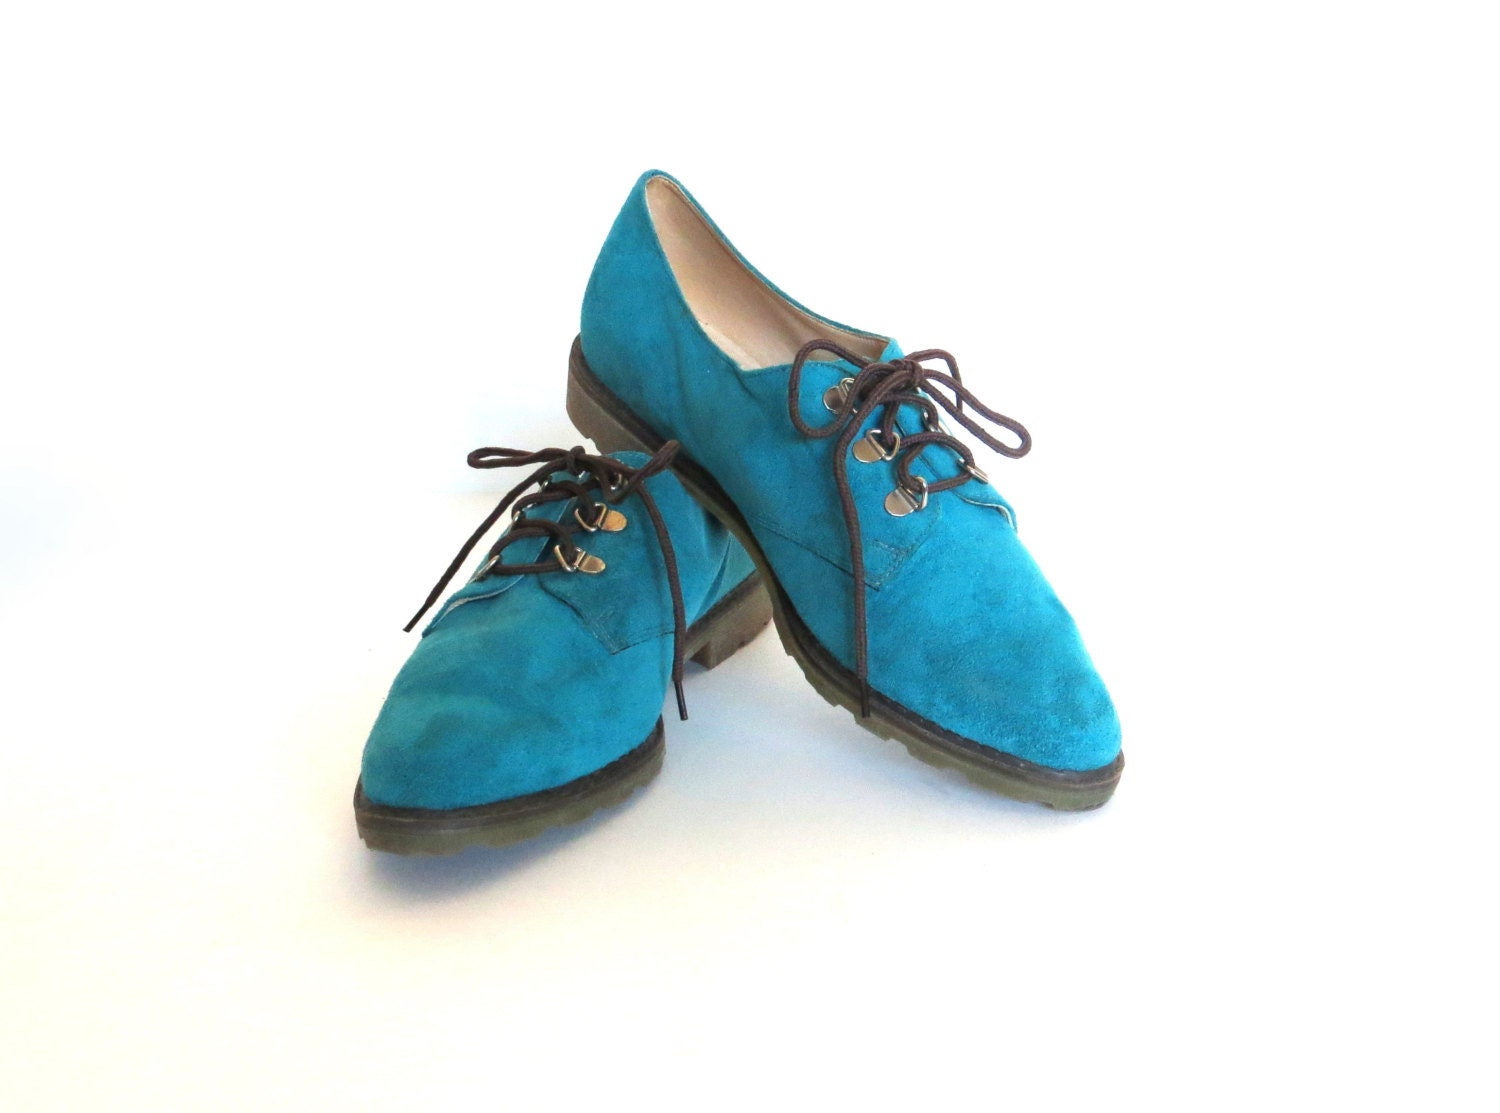 Vintage Lace Up Oxfords / Turquoise Suede / Linda Lundstrom / Size 7.5 - almondtreevintage